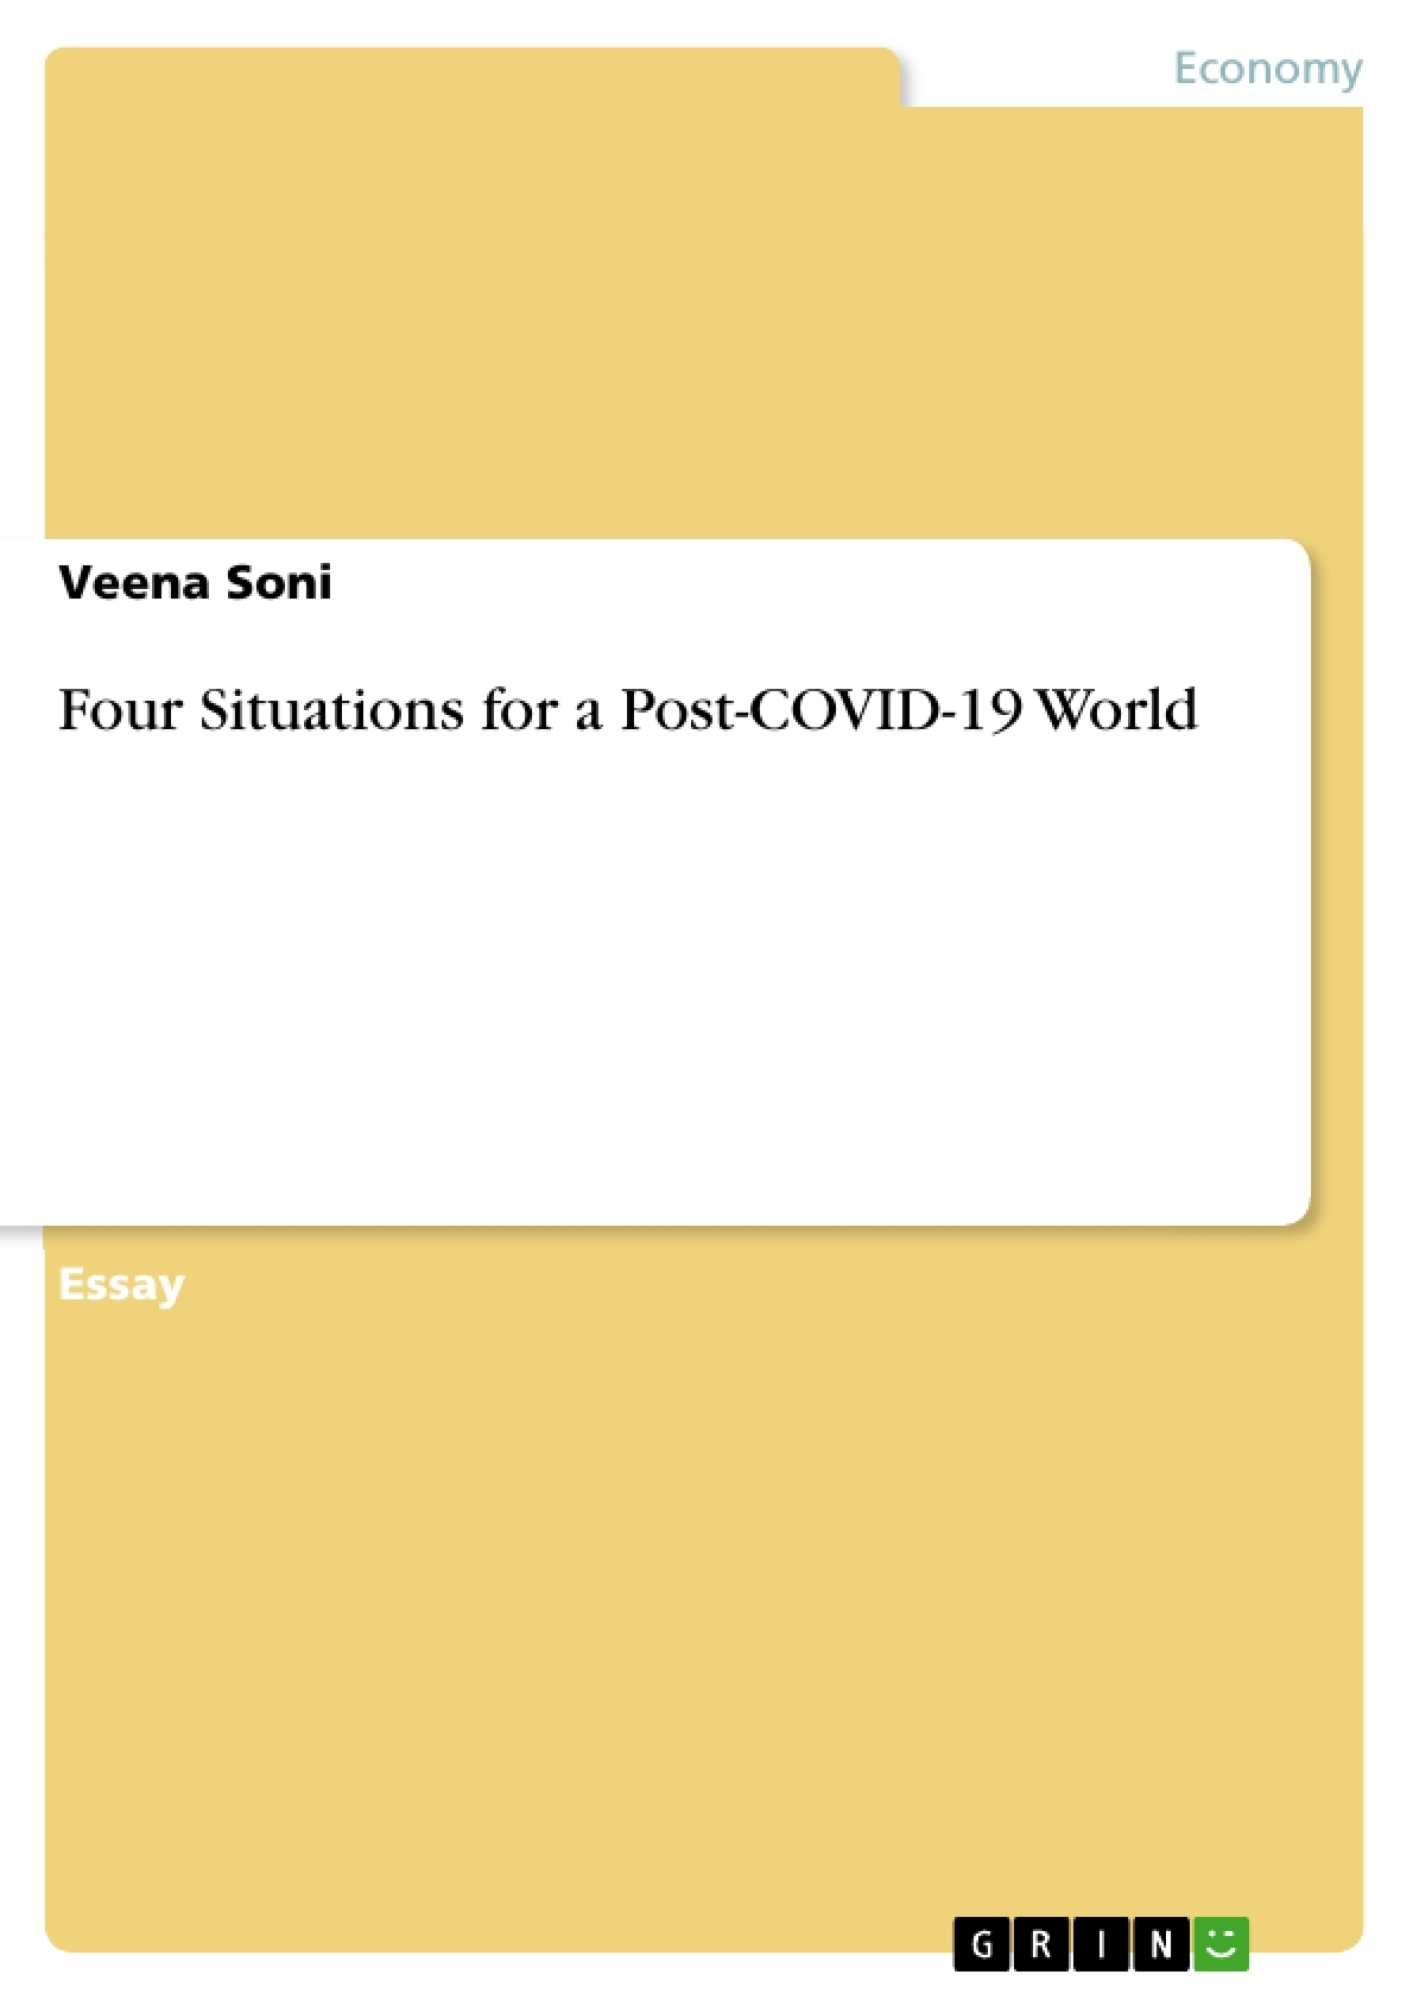 Title: Four Situations for a Post-COVID-19 World